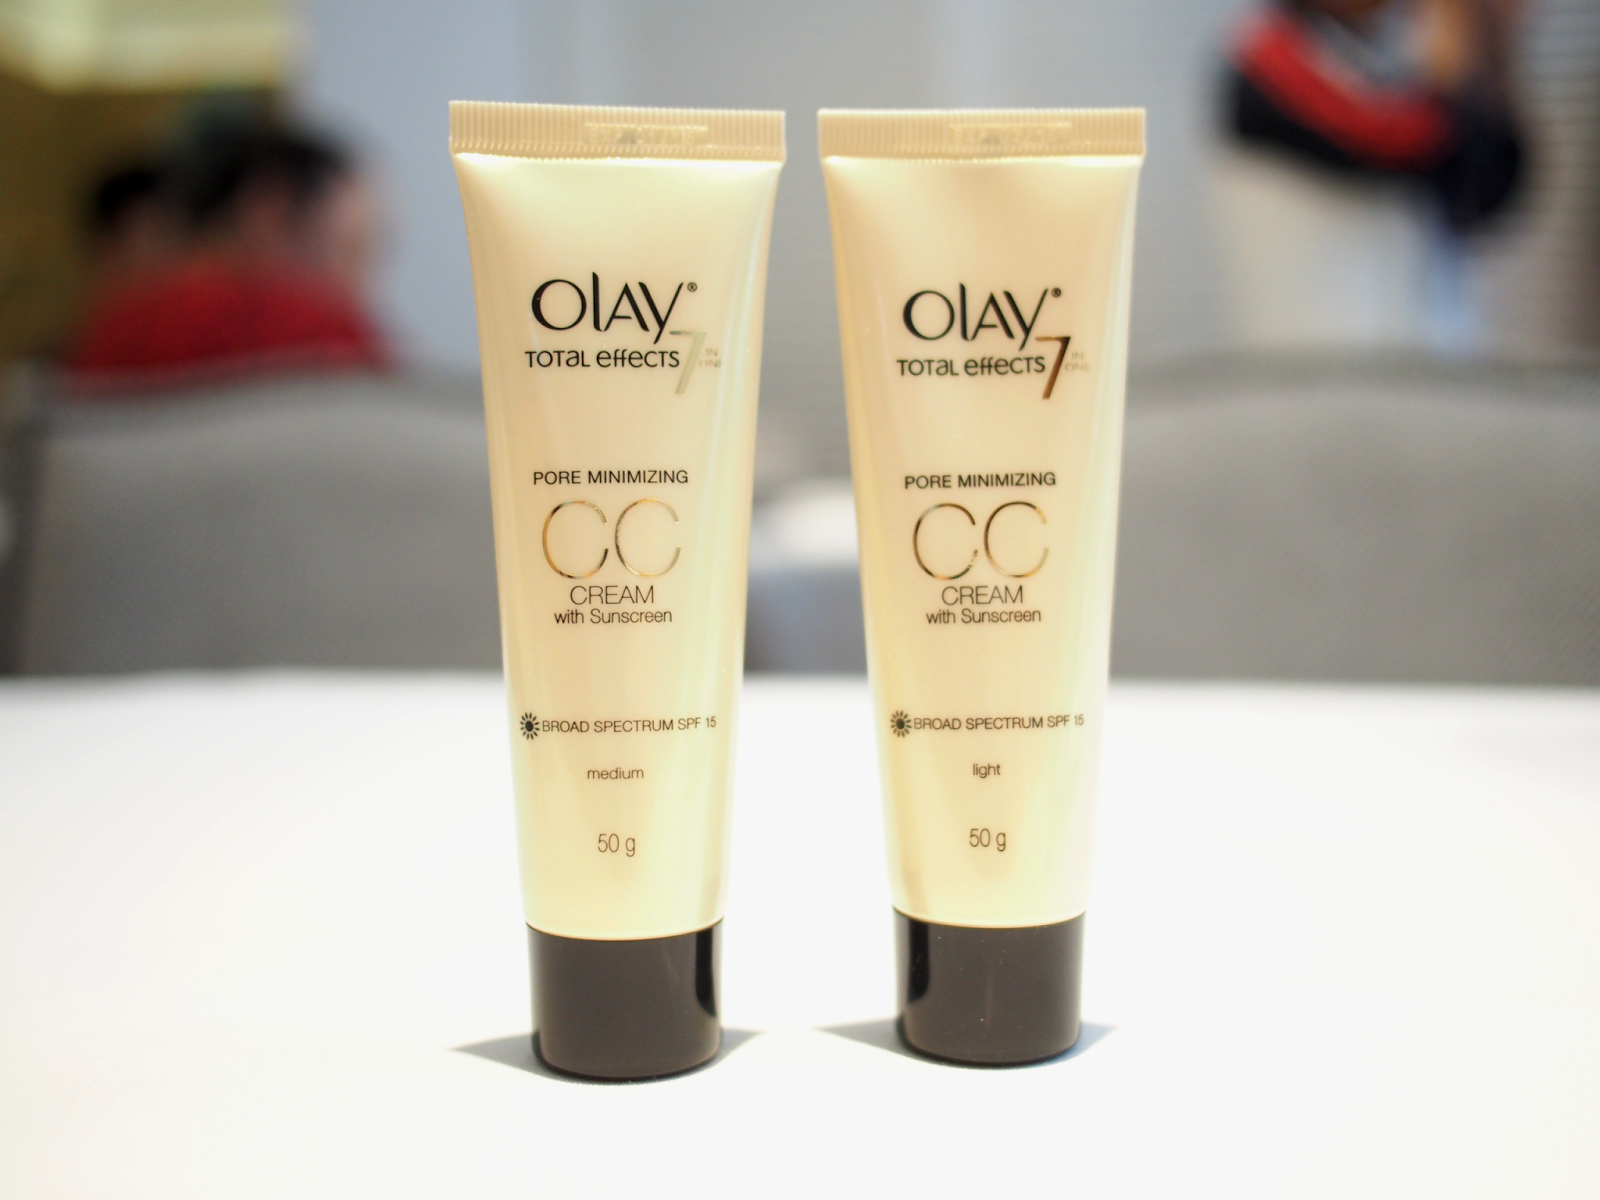 olay cc cream pore minimizing review